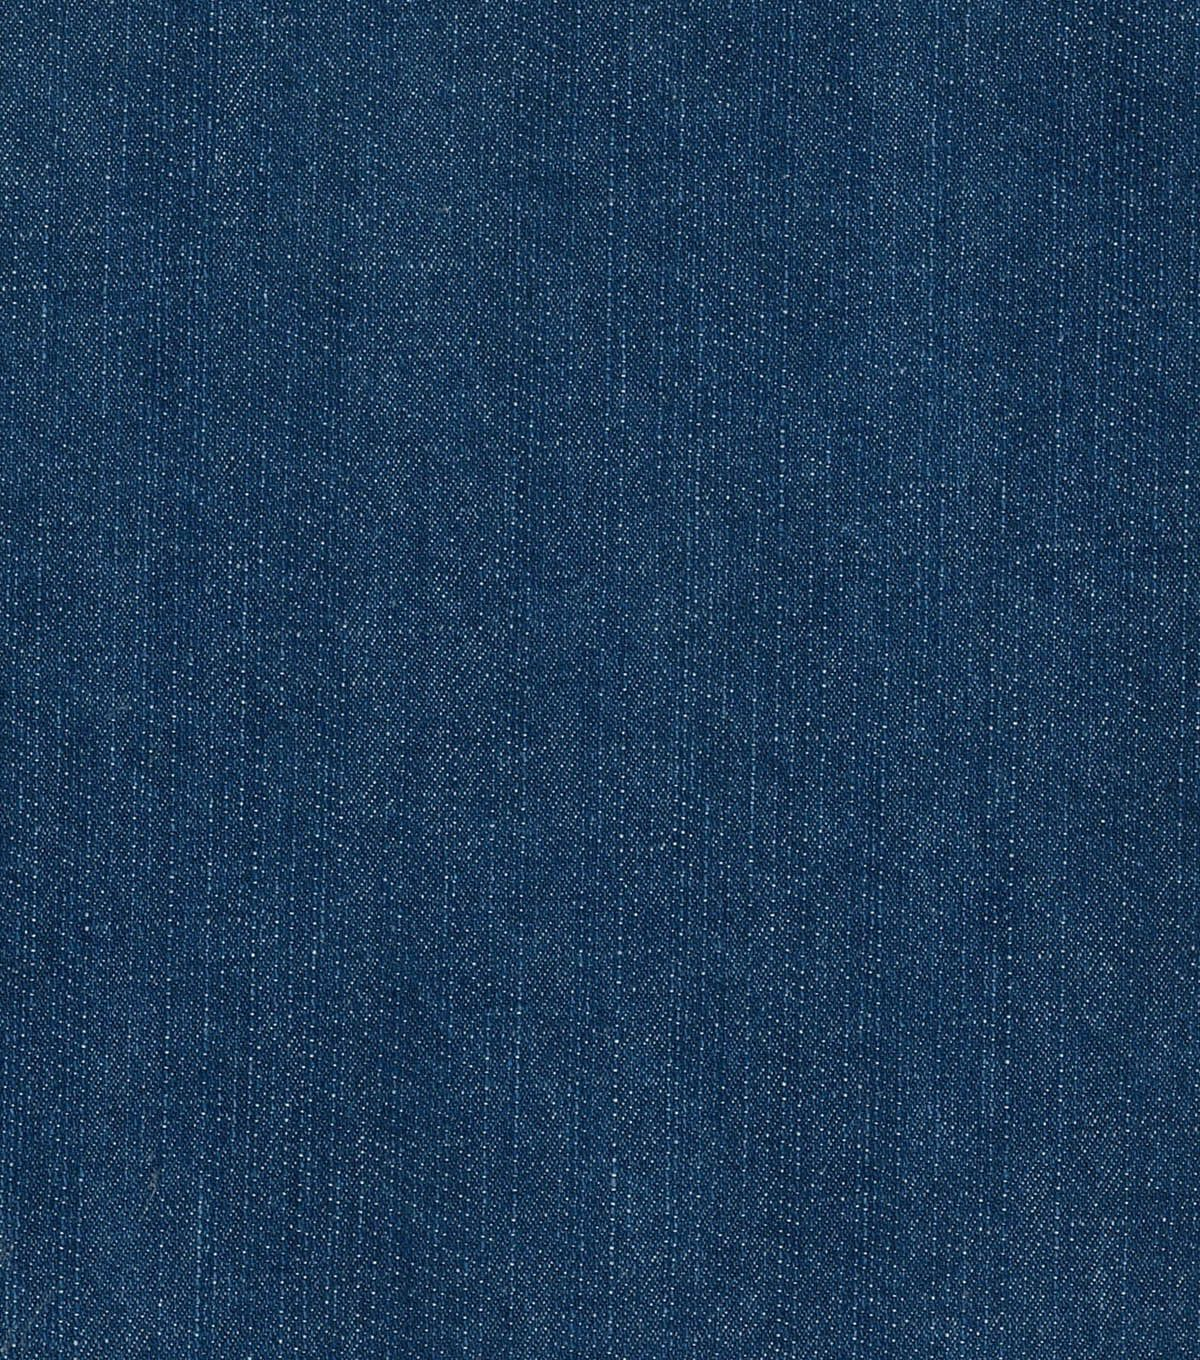 Bottom Weight Denim Fabric 12 Oz Blue Texture Joann In 2020 Blue Fabric Texture Blue Texture Denim Fabric